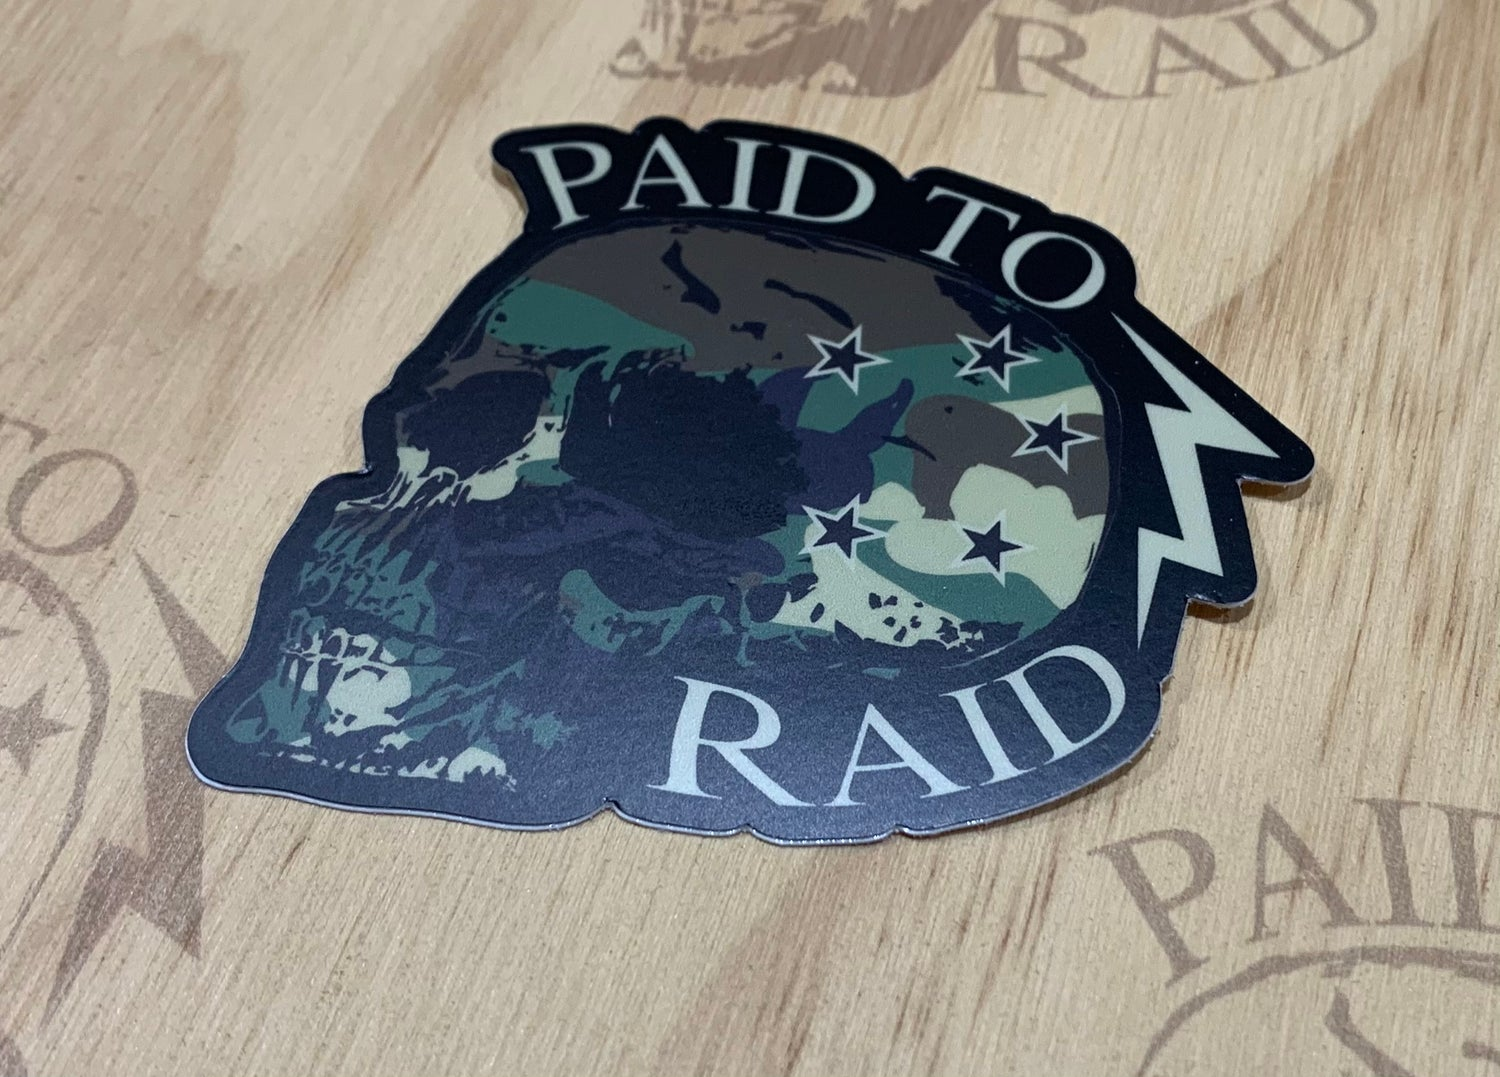 Image of Paid to Raid Skull Decal